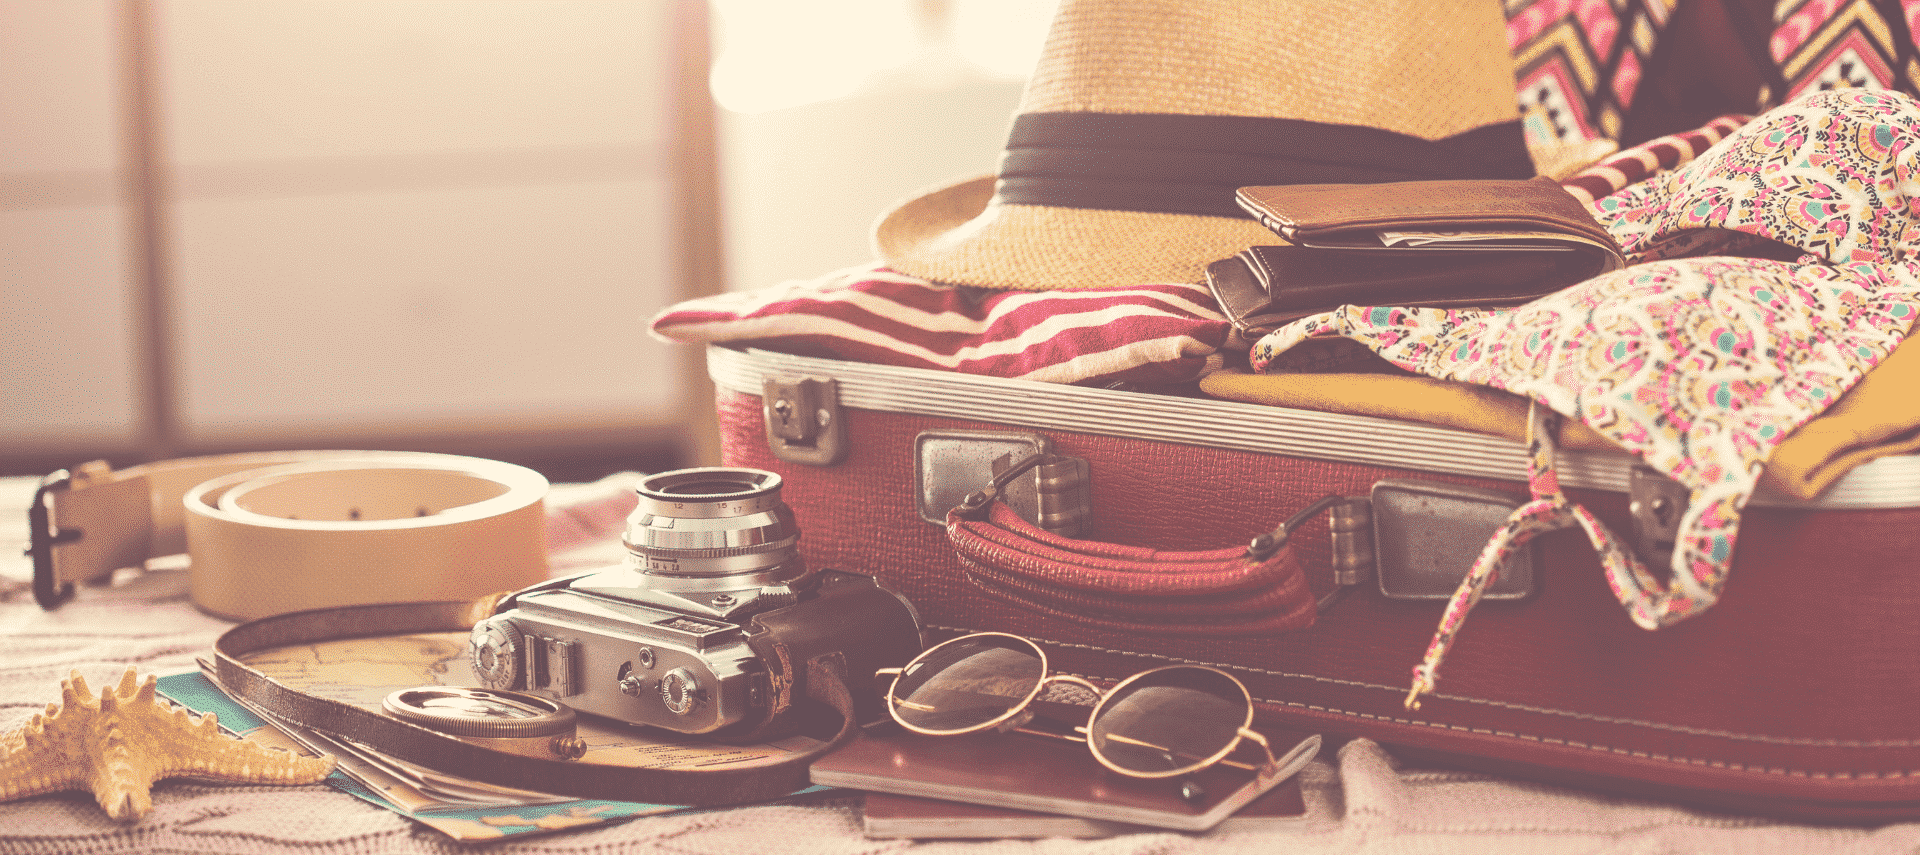 open packed leather suitecase with other miscellaneous items (camera, sunglasses, belt, starfish) sitting in front